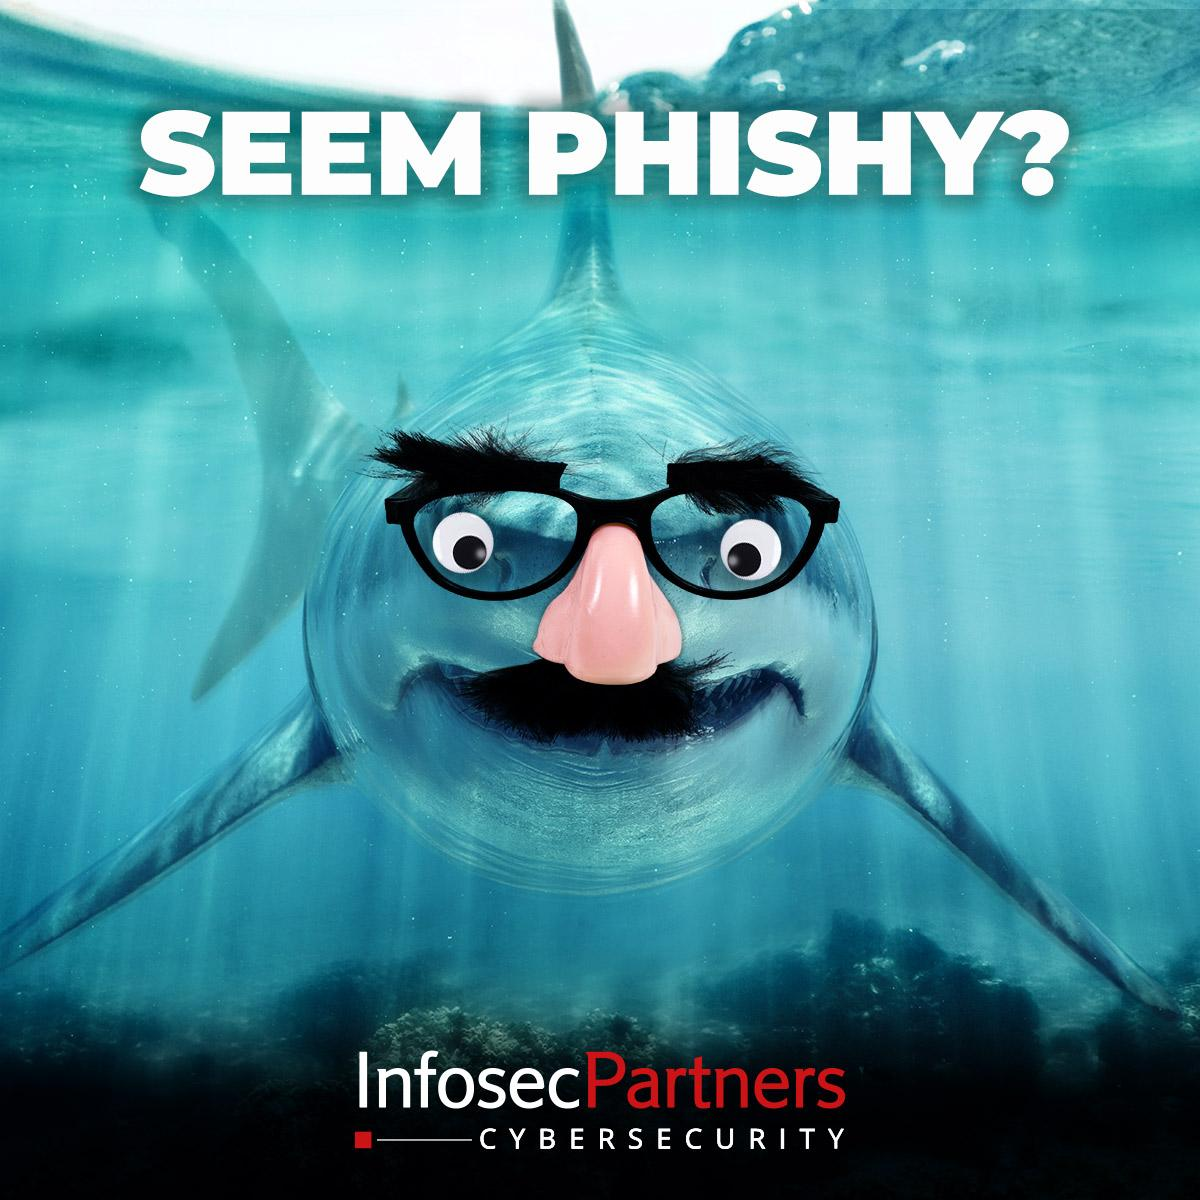 seem phishy? cyber risk aware - phishing awreness